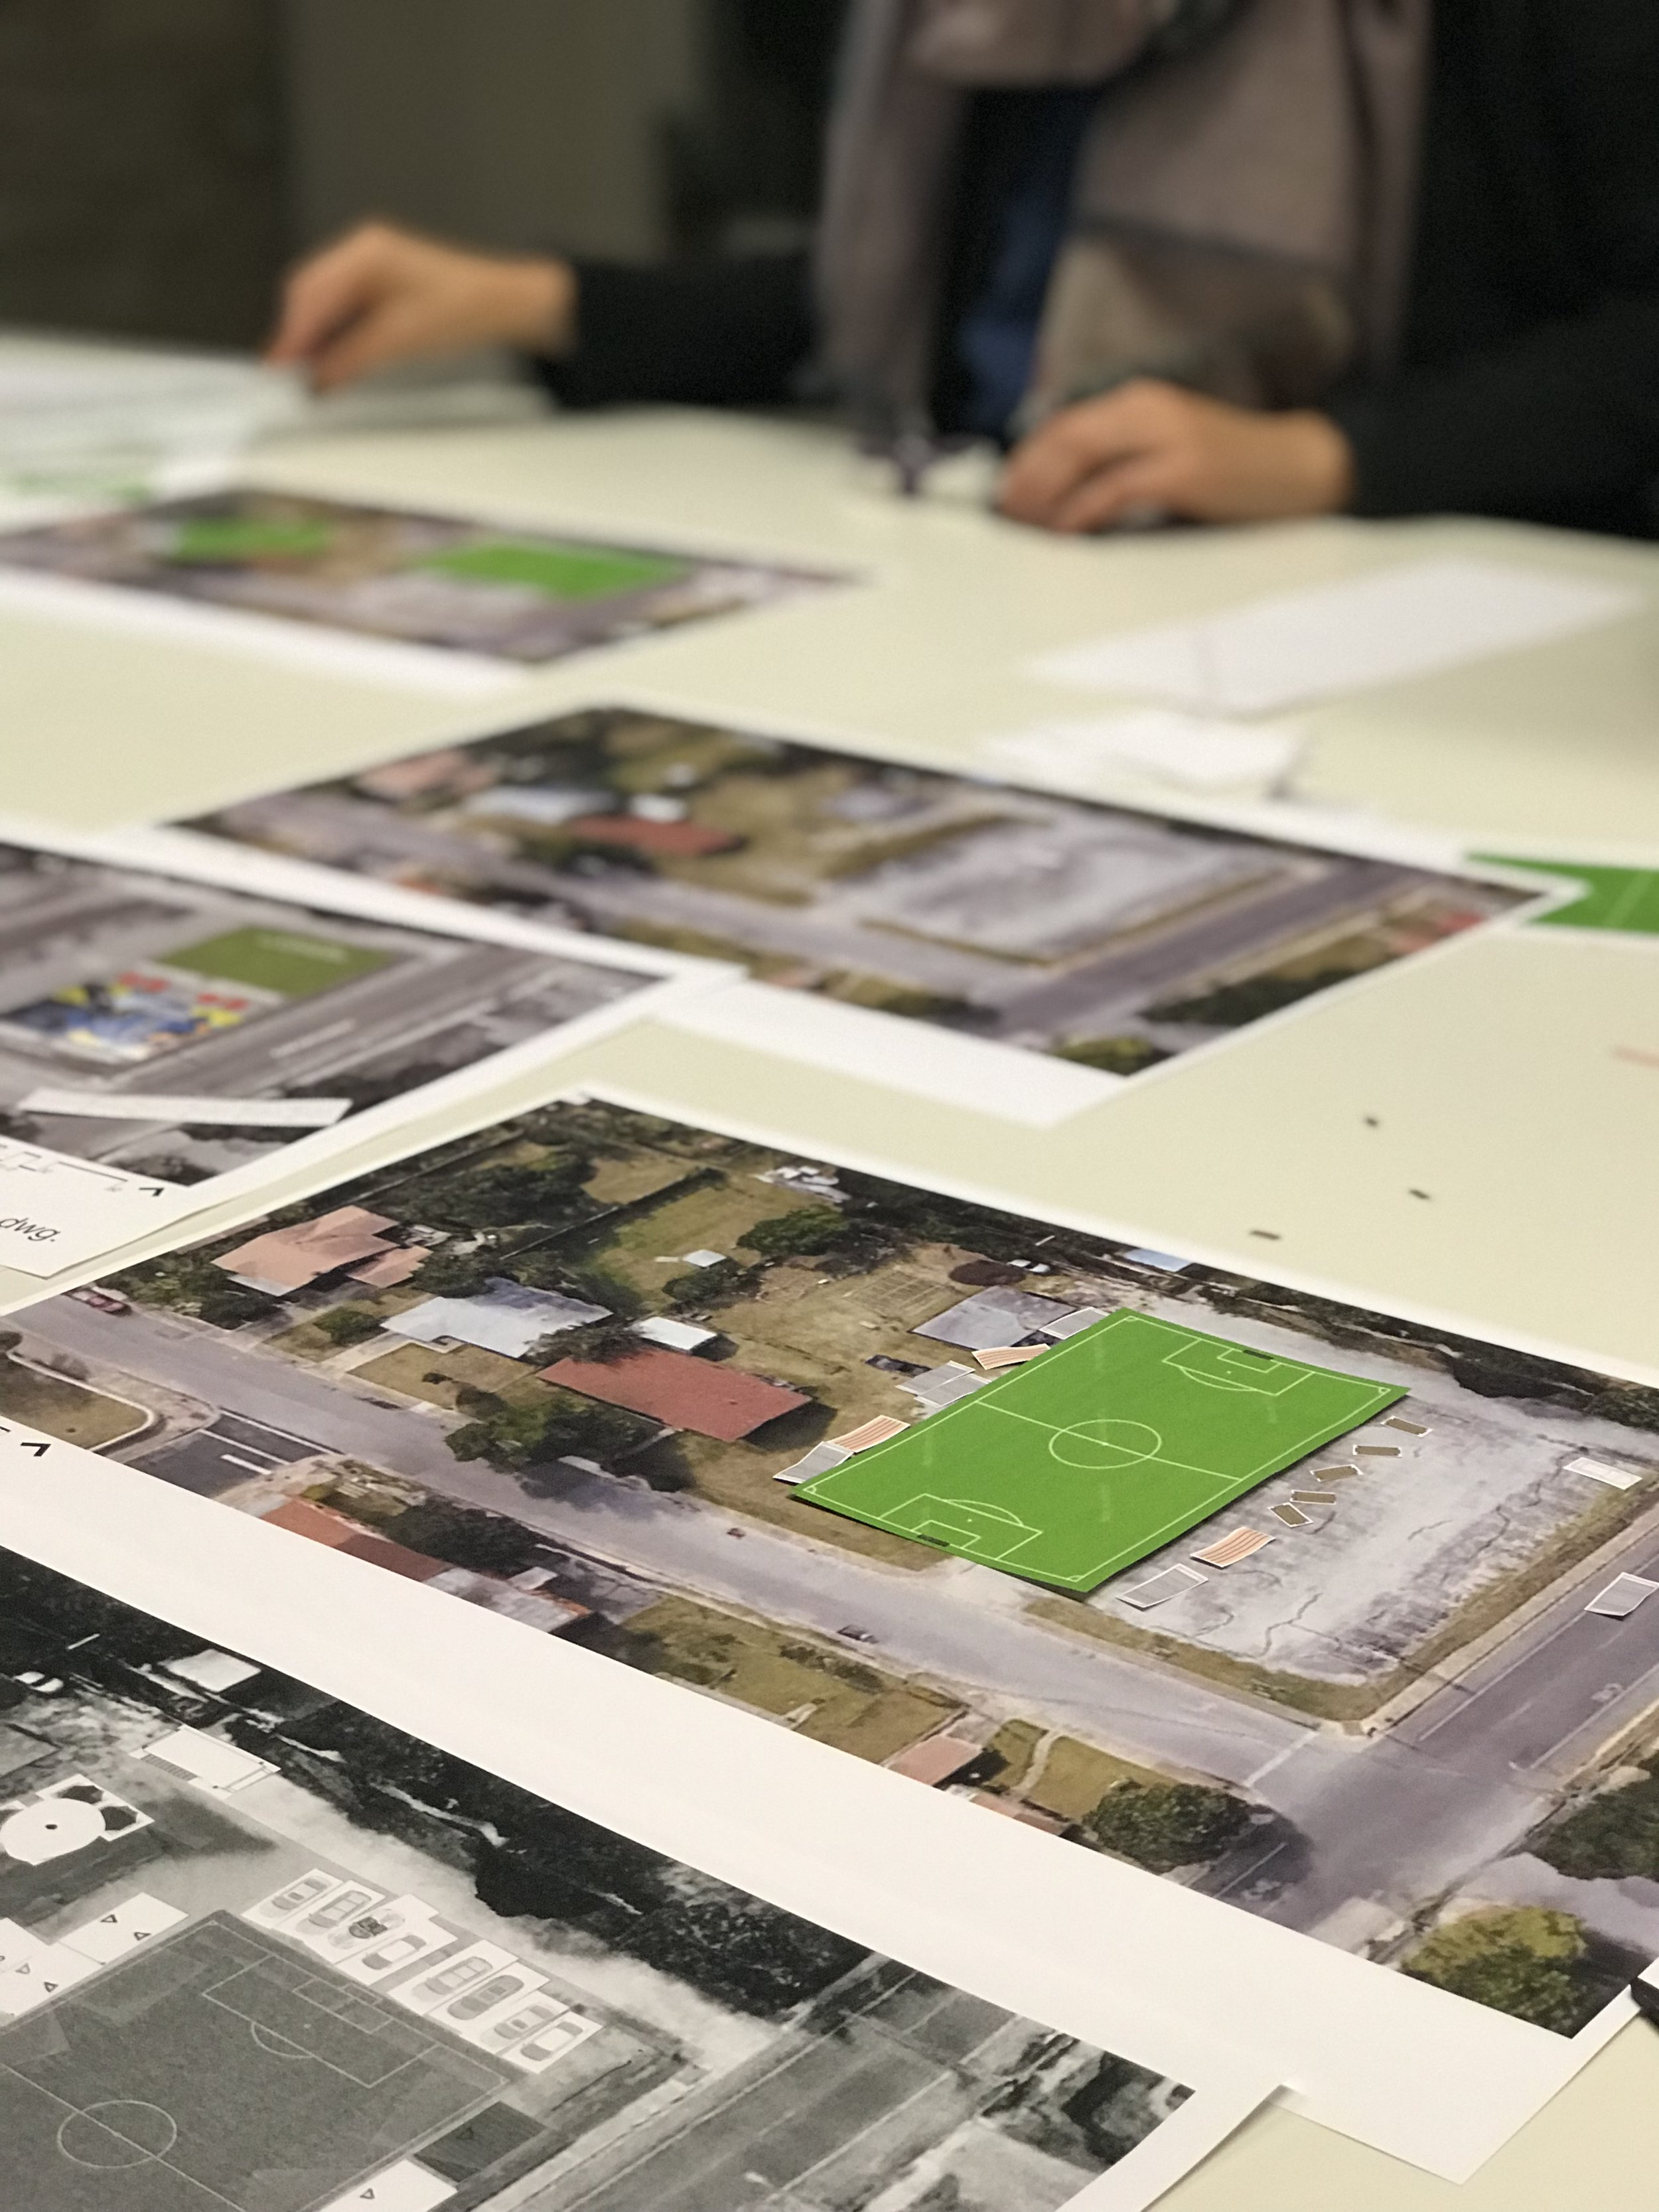 VISION - Take an underused lot in an urban community and transform into a soccer field in an effort to bring the community together. Please contact us for sponsorship opportunities.